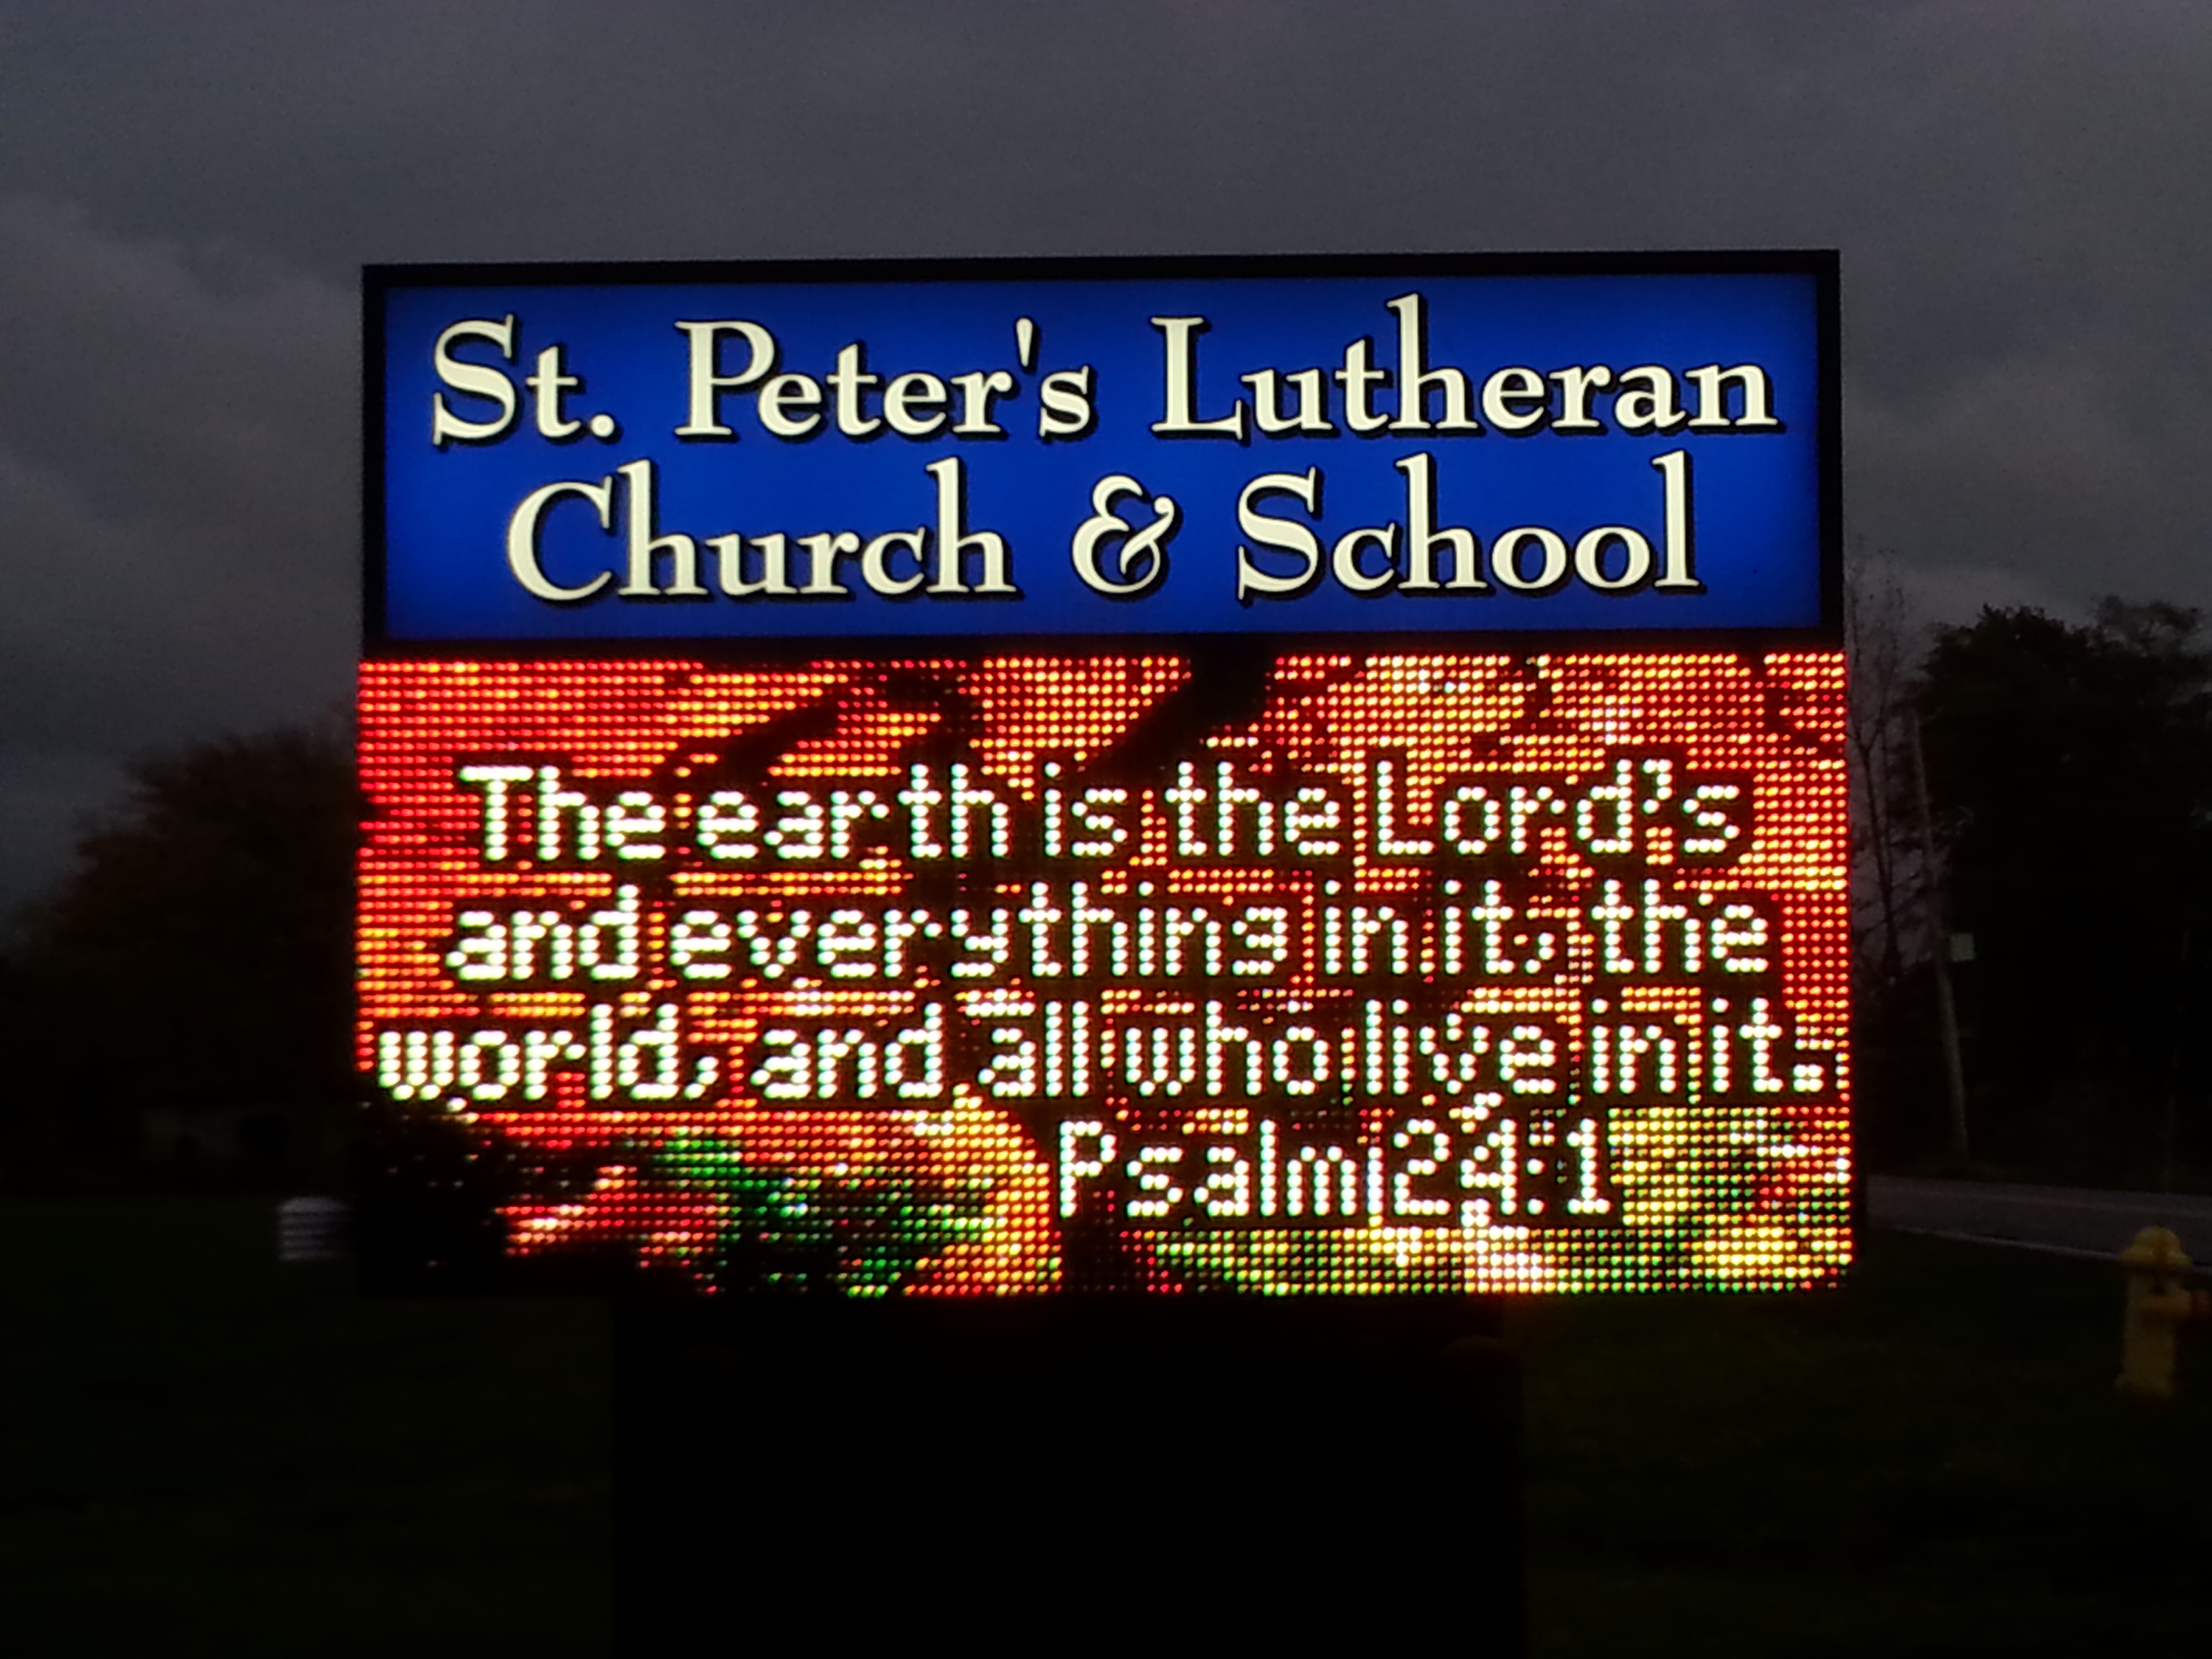 ST. PETER'S